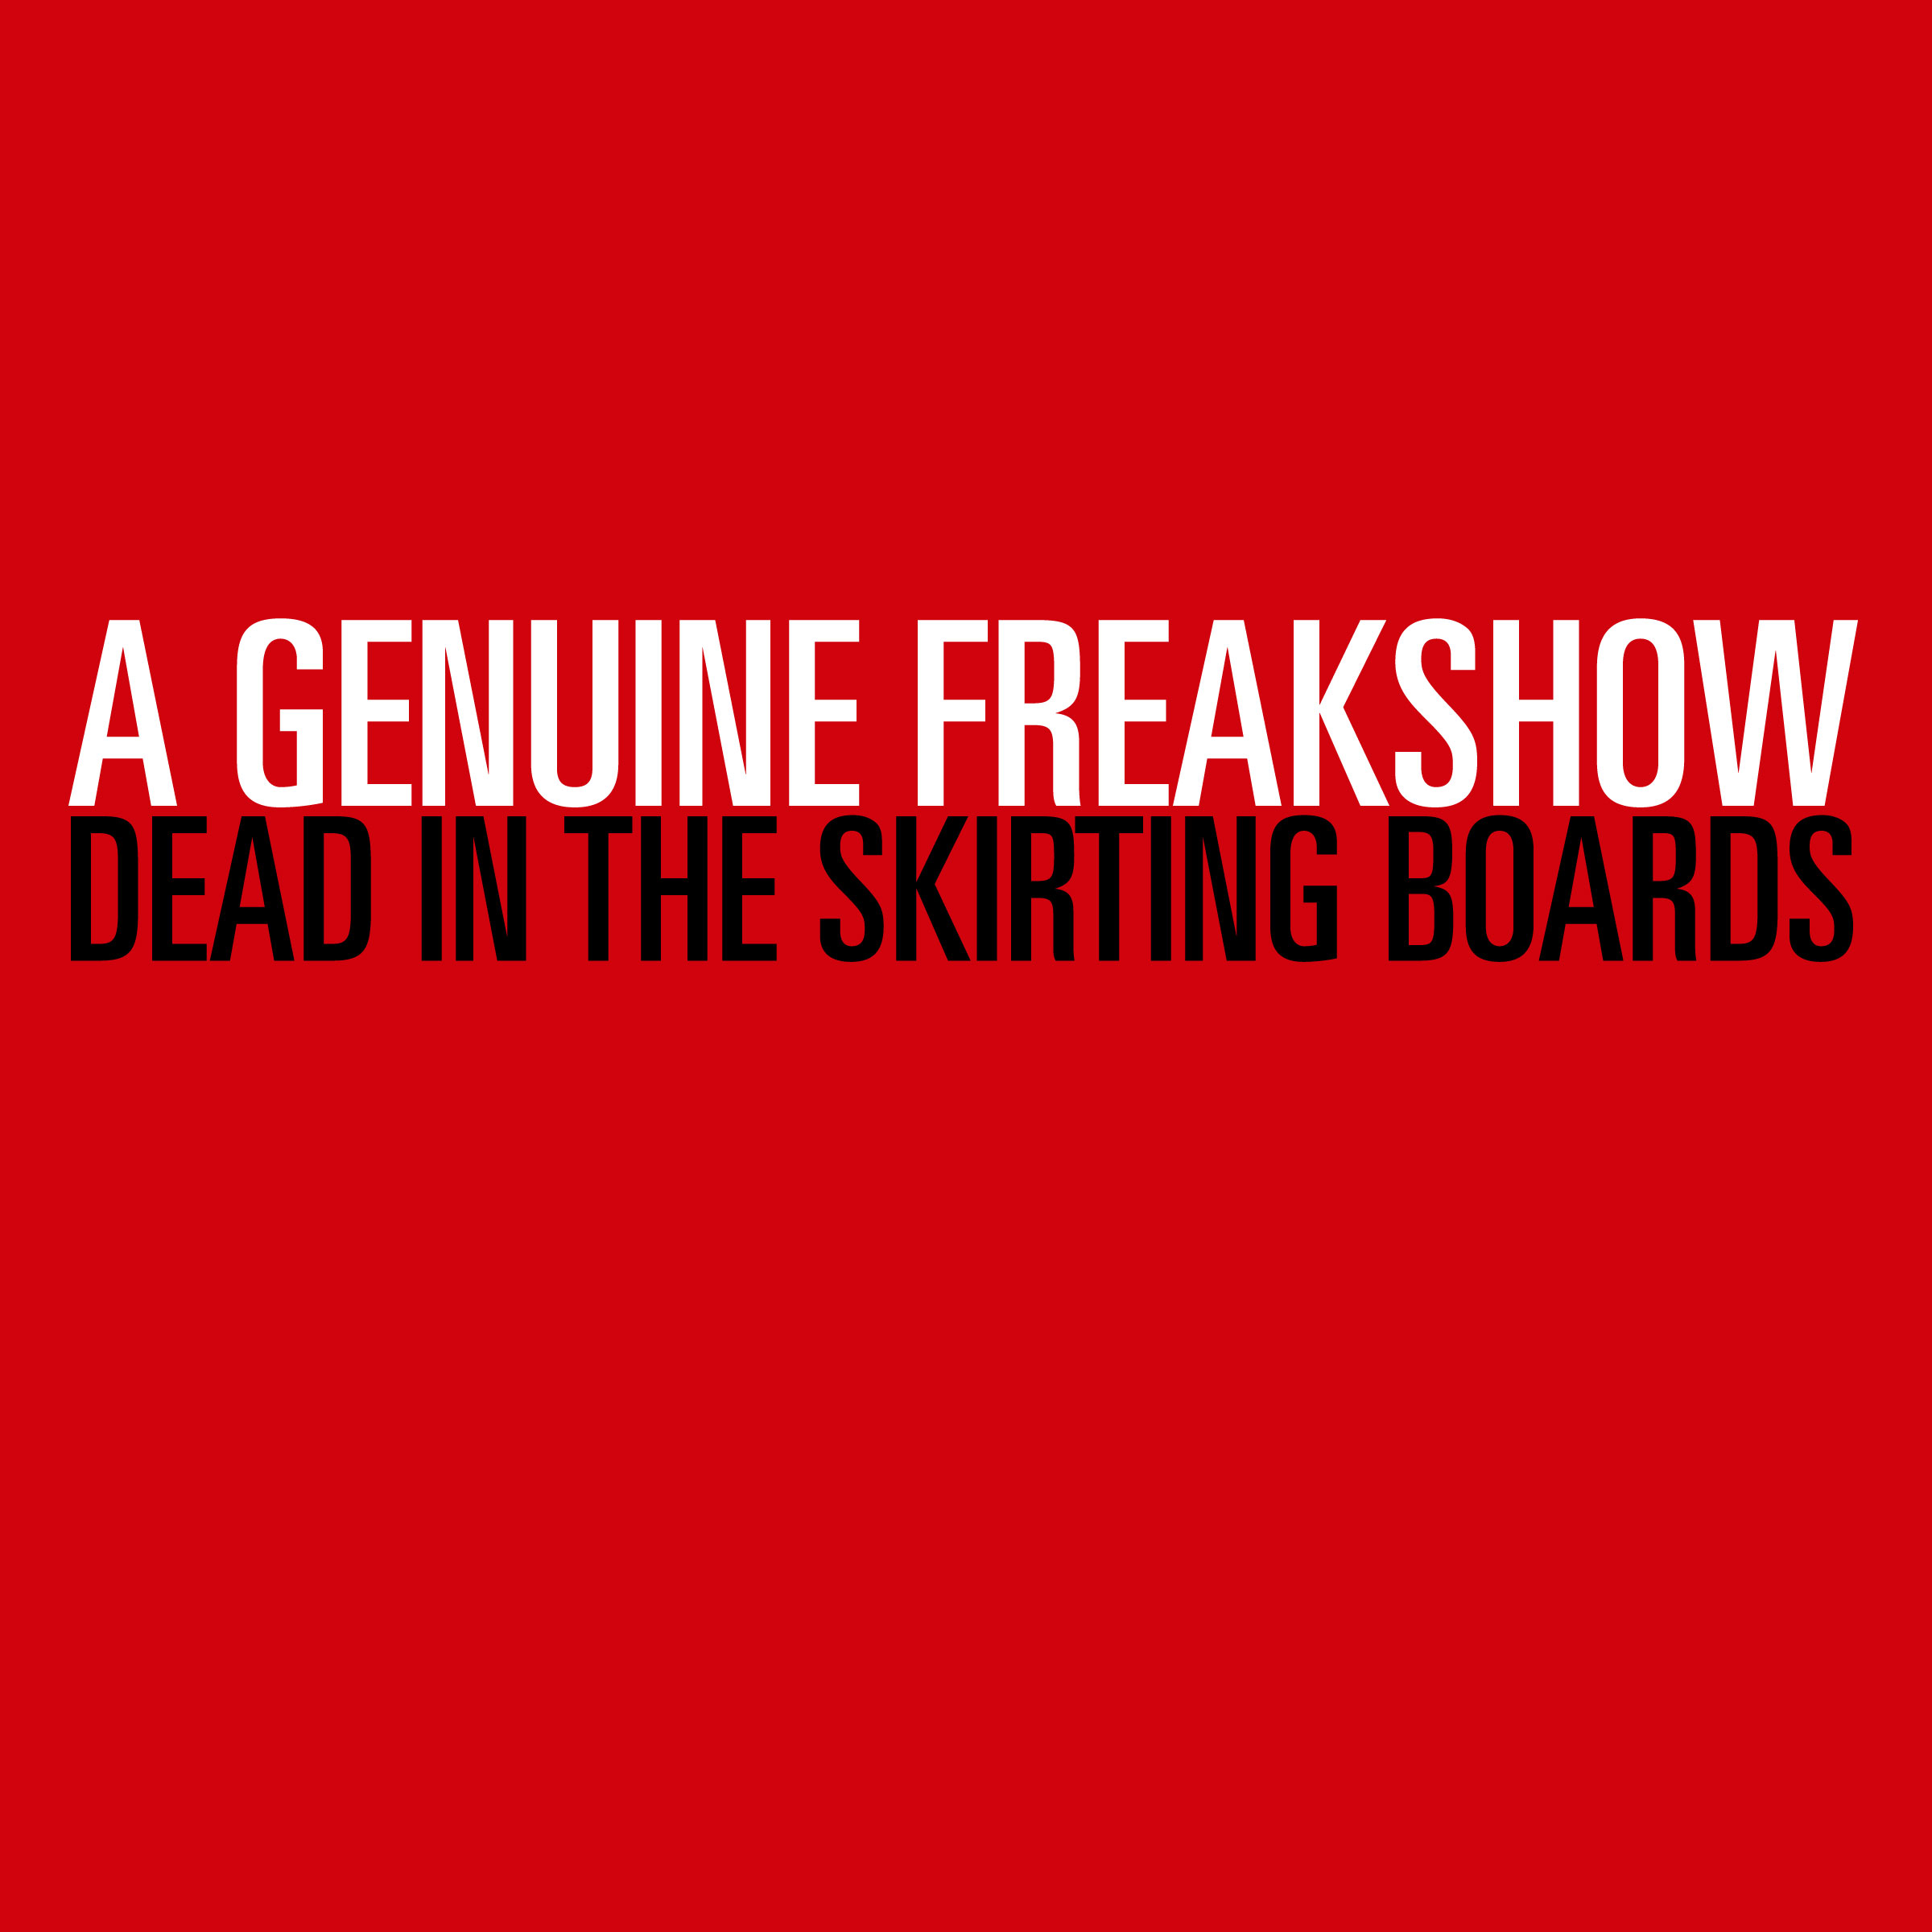 Dead In The Skirting Boards (Free Download) - A Genuine Freakshow